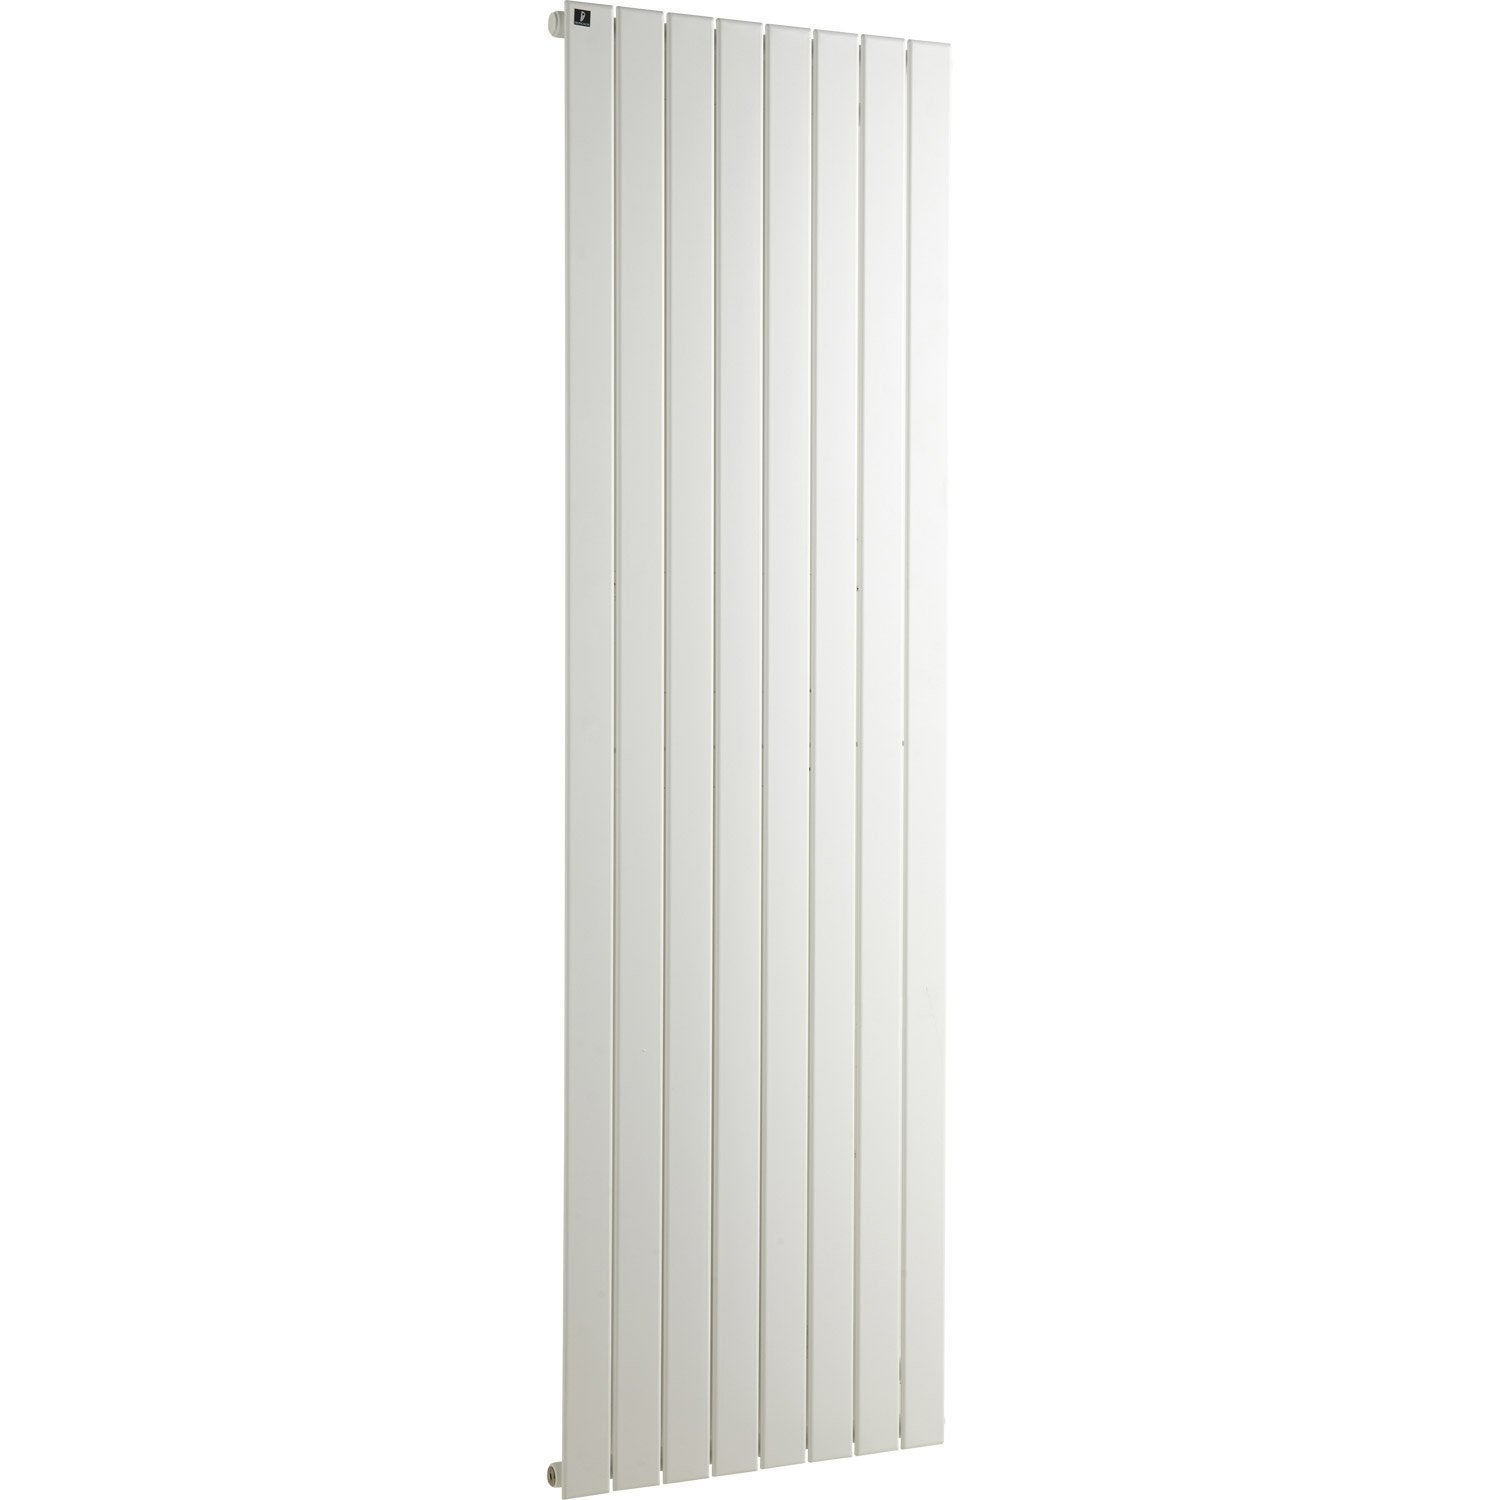 radiateur chauffage central deltacalor pianosa cm 1265 w leroy merlin. Black Bedroom Furniture Sets. Home Design Ideas